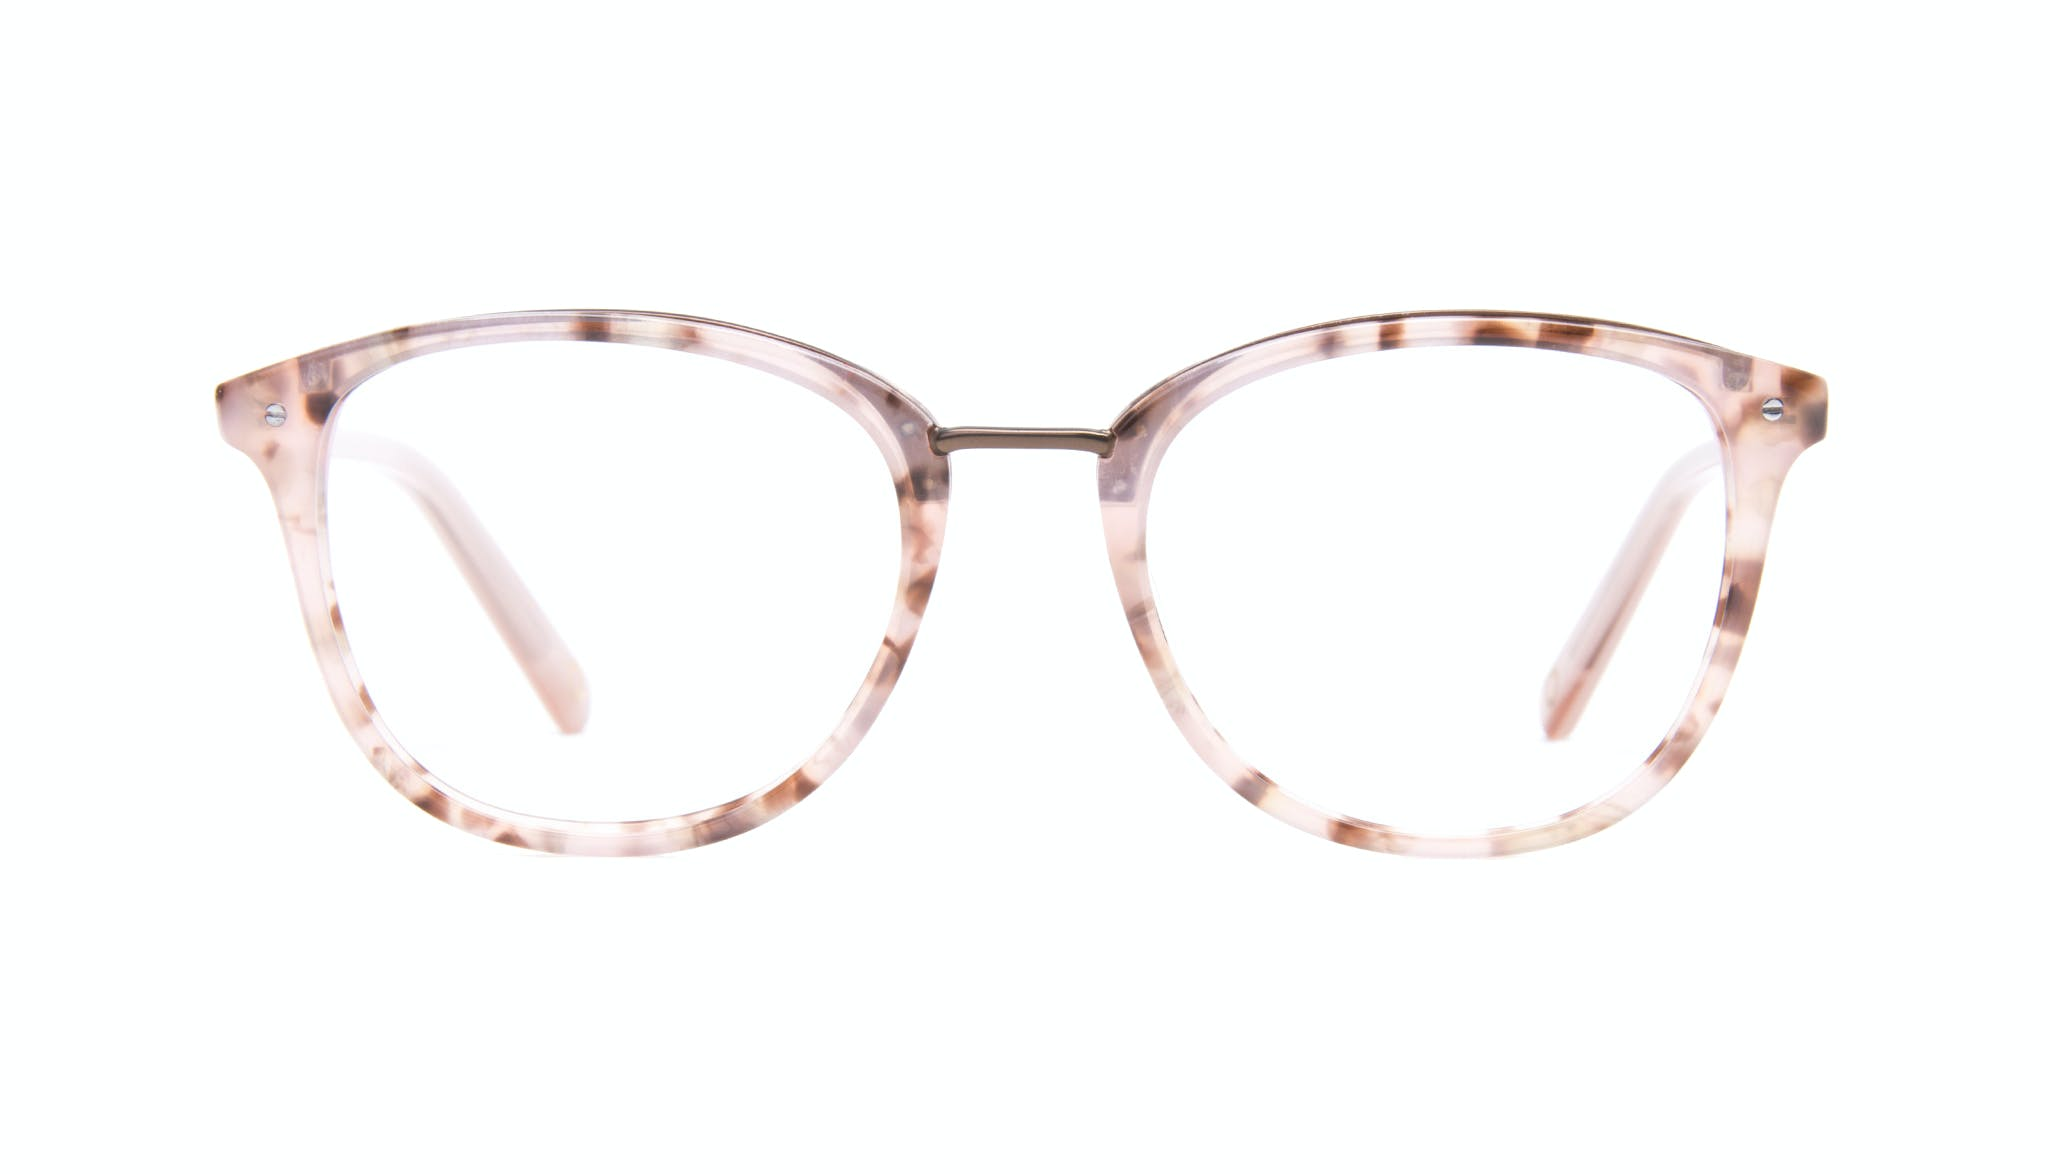 Affordable Fashion Glasses Square Round Eyeglasses Women Bella Blush Tortie